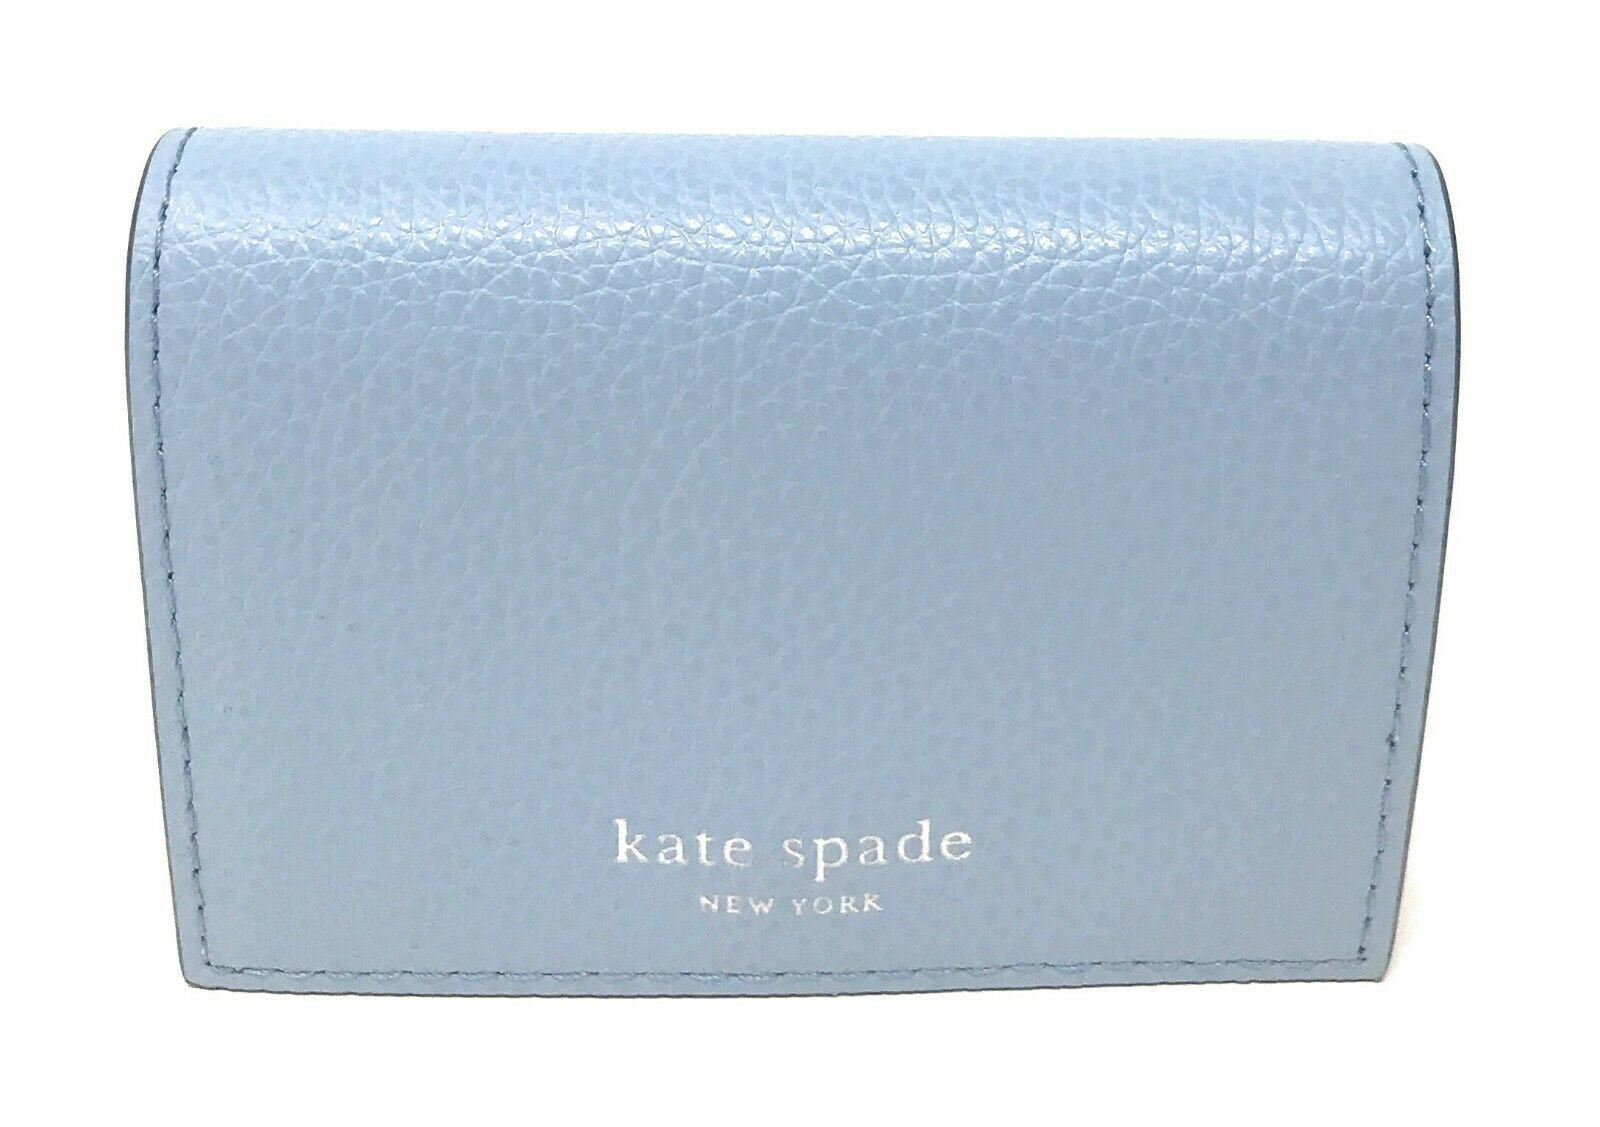 Kate Spade Eva Accordion Blue Dawn Blazer Card Case Small Wallet WLRU5235 $89